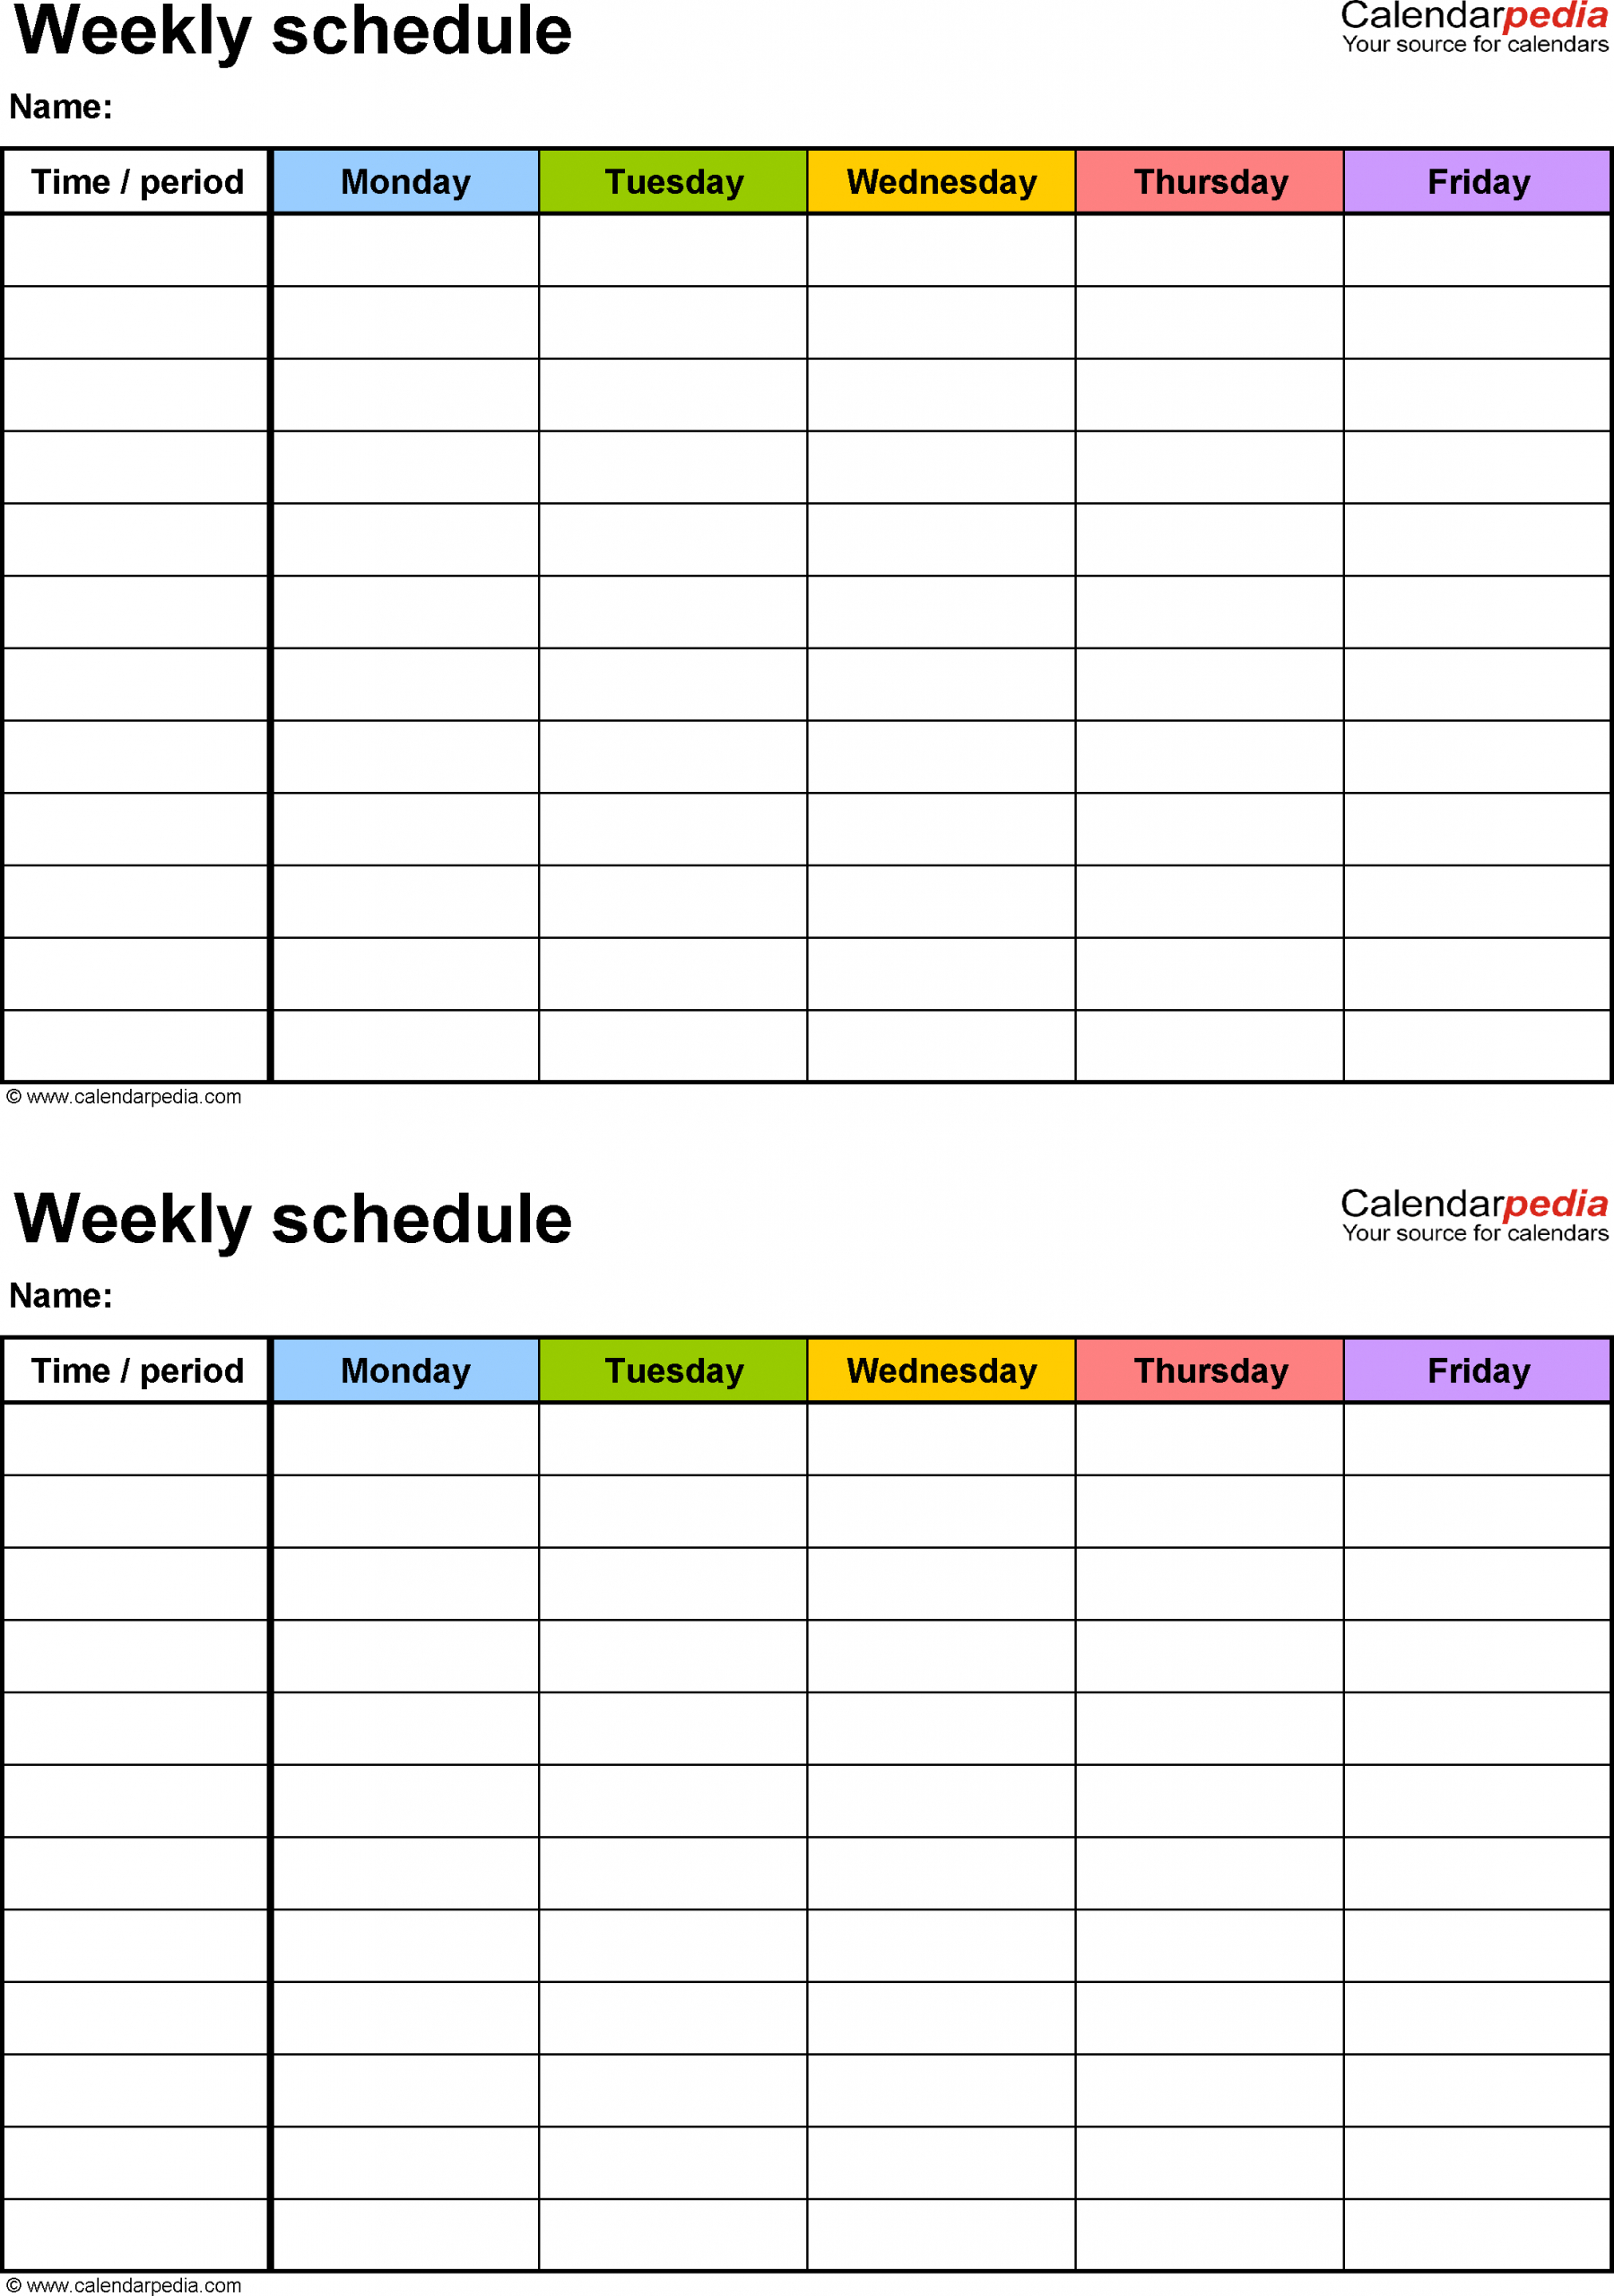 Collect Paper Schedule Templates Thursday Start Of Pay School Time Schedule Exercise Fill Blanks